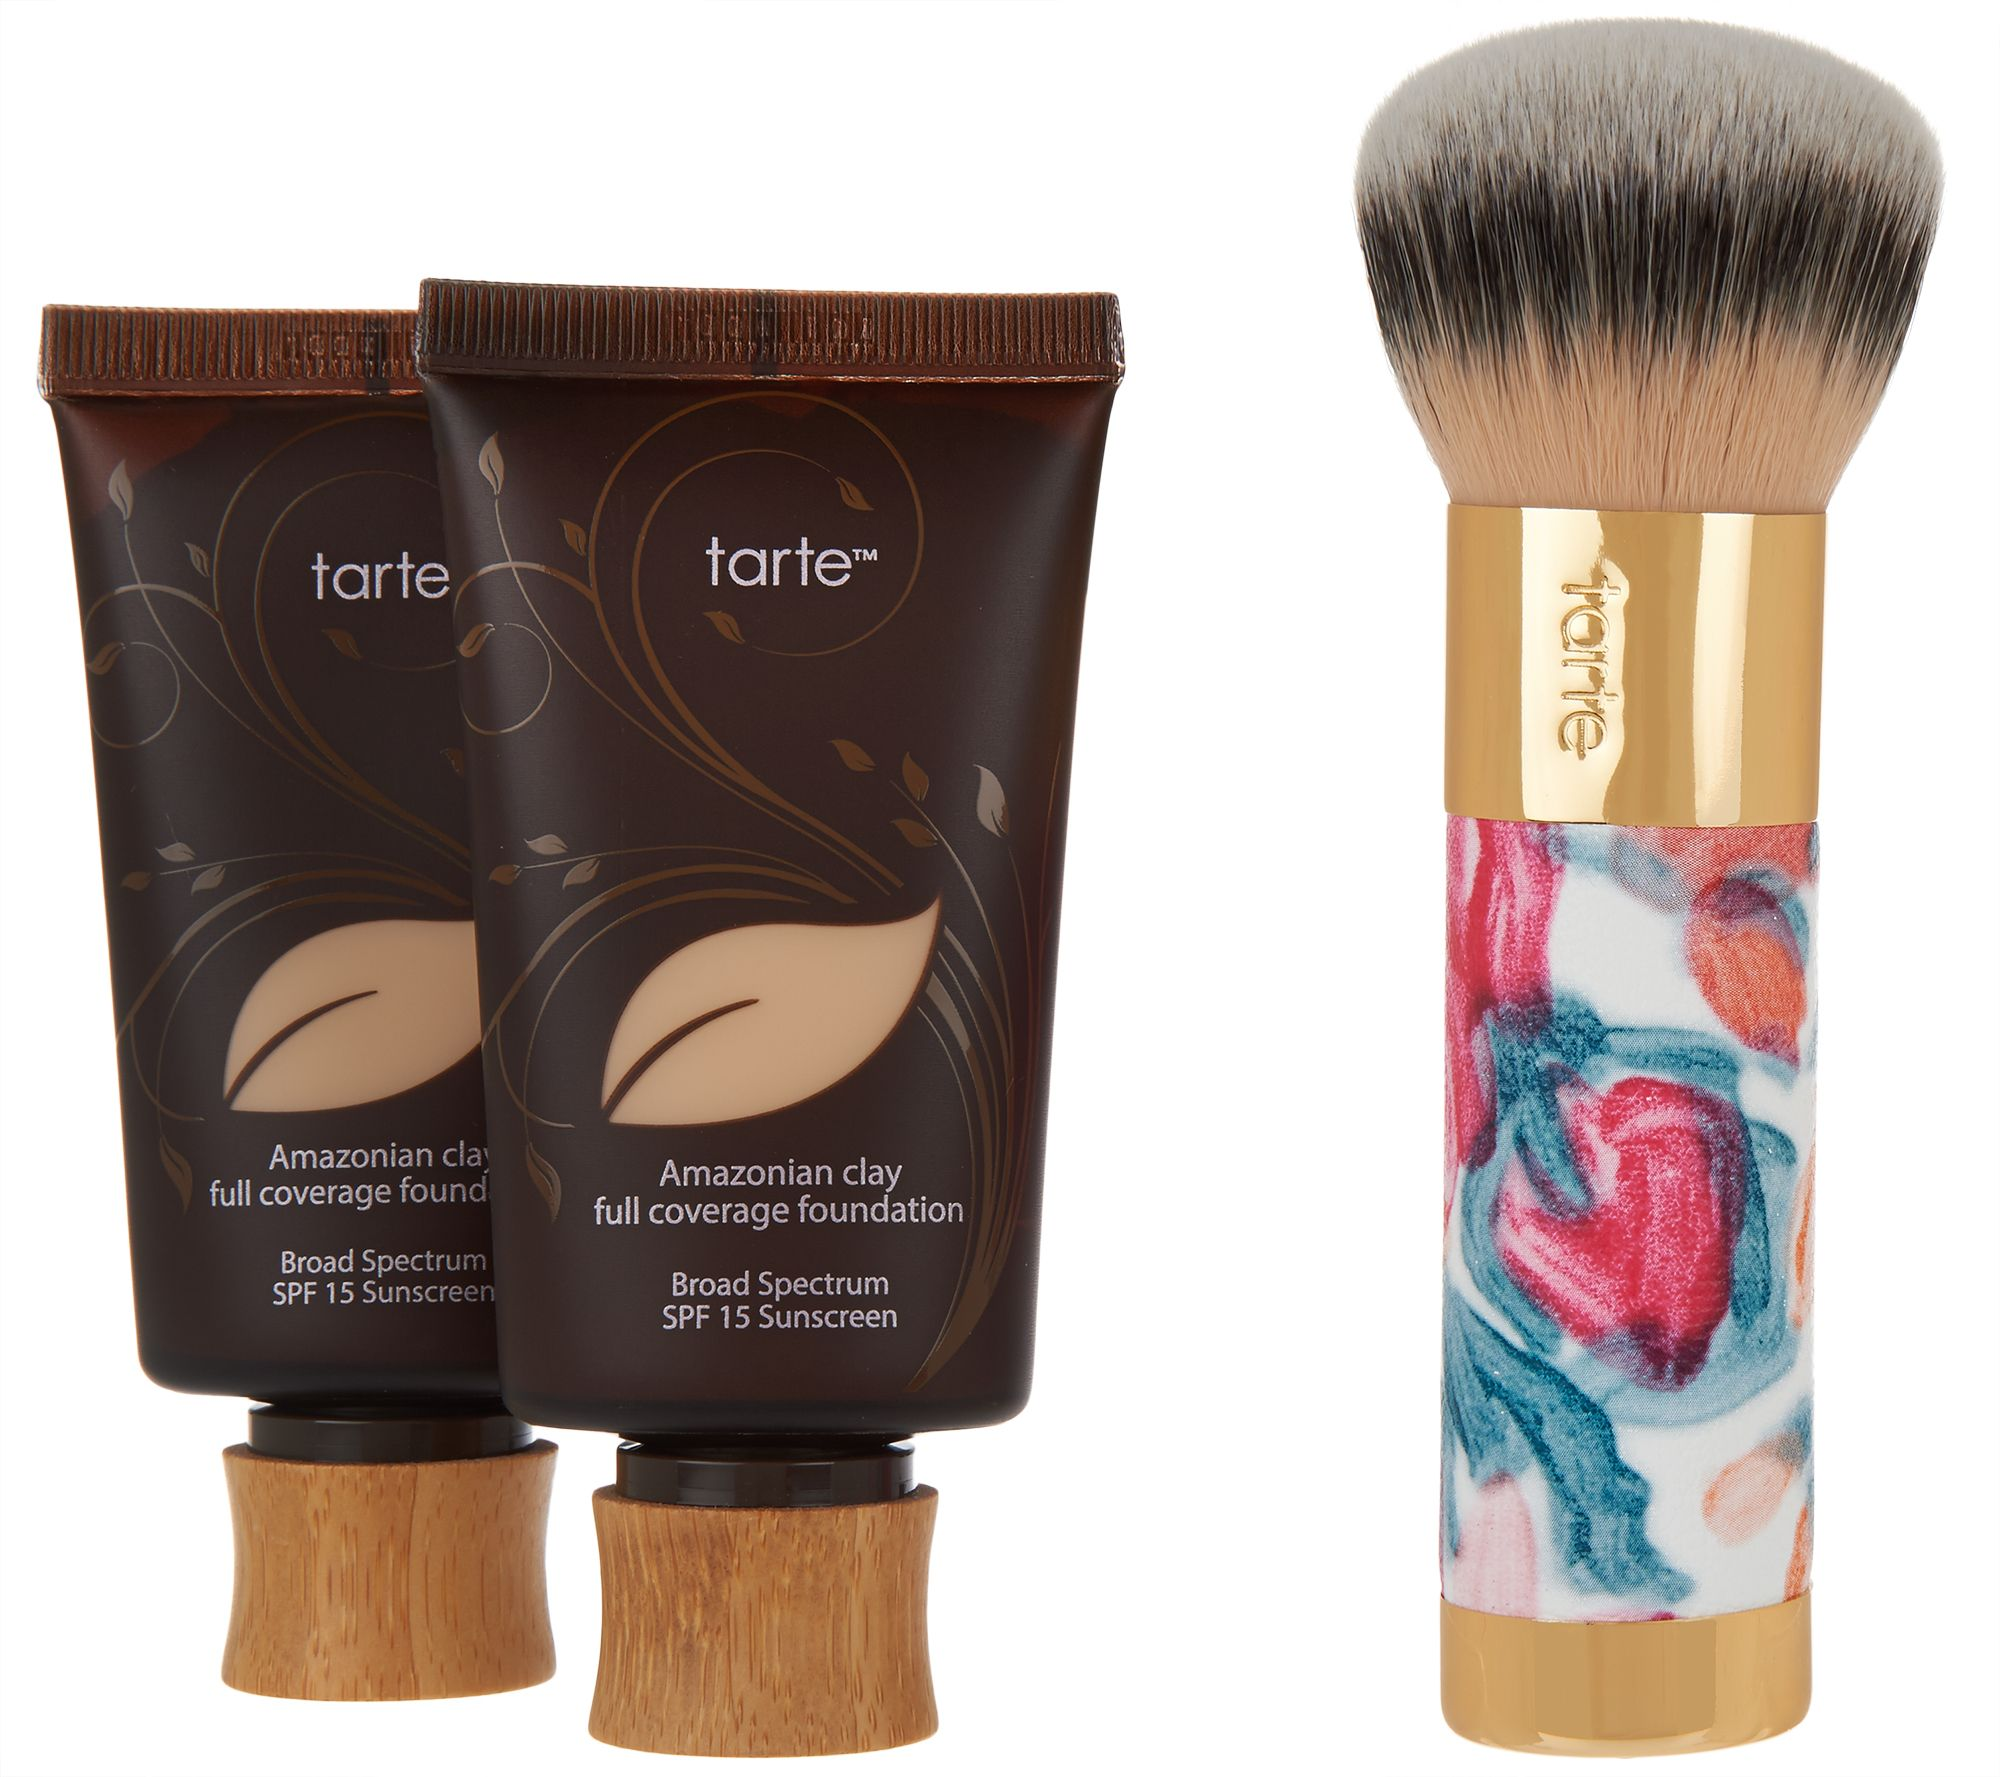 tarte Super-Size Amazonian Clay Foundation & Deco Brush